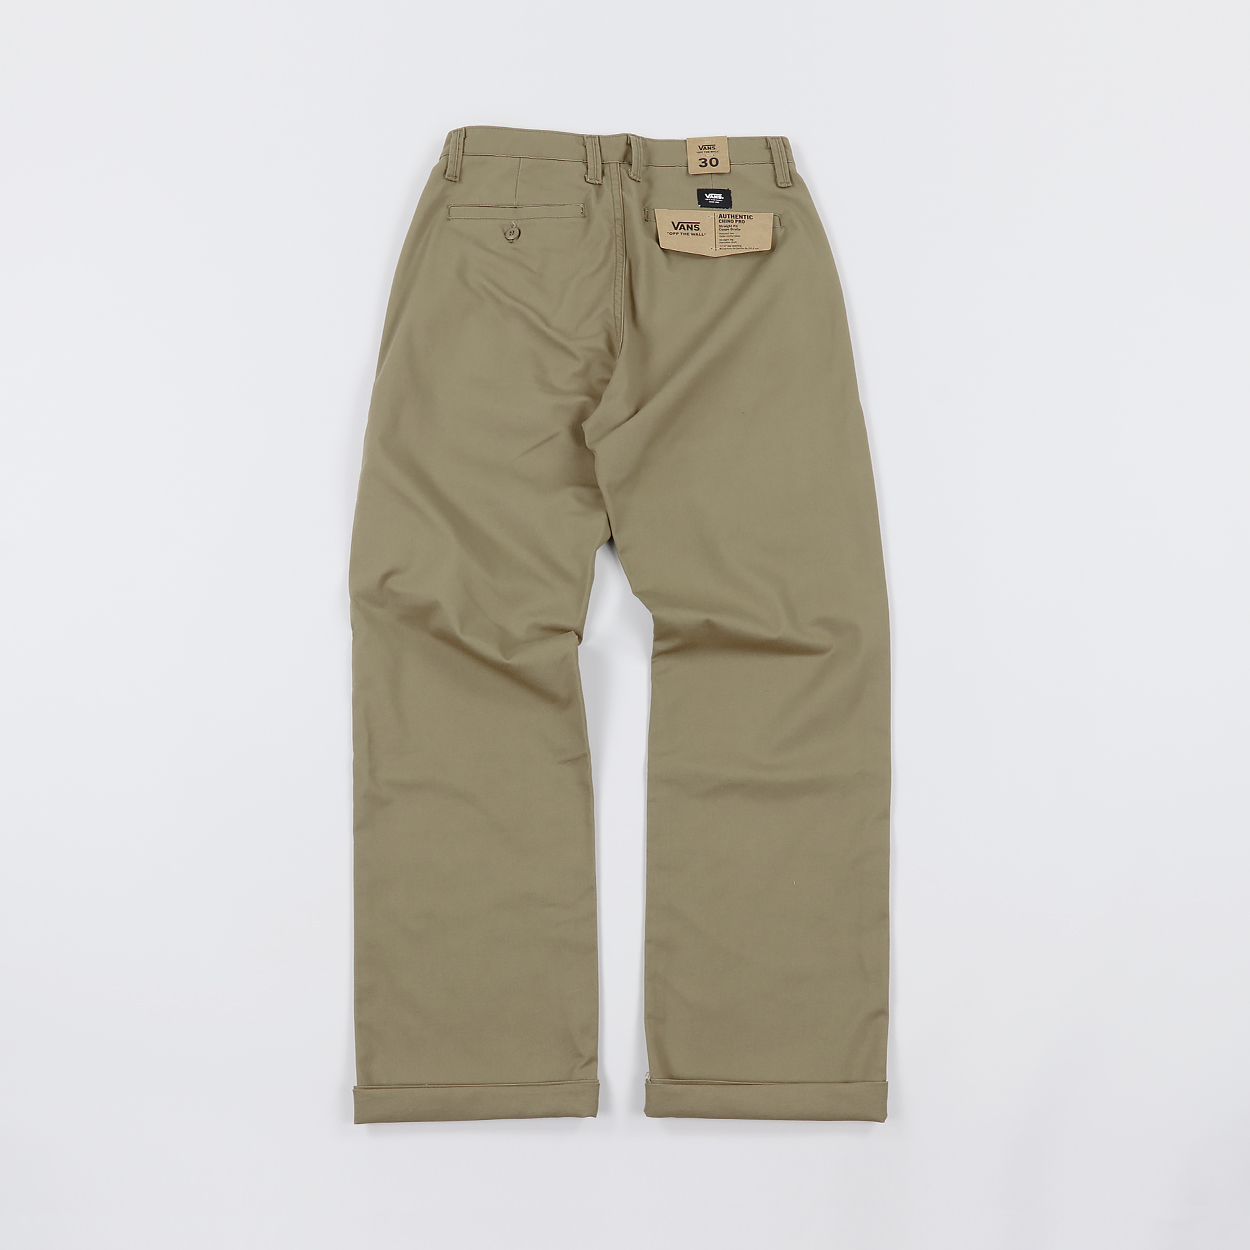 8f5dcc5b83e25e Vans Mens Skate Strength Authentic Chino Pro Pants Dirt Brown £45.50